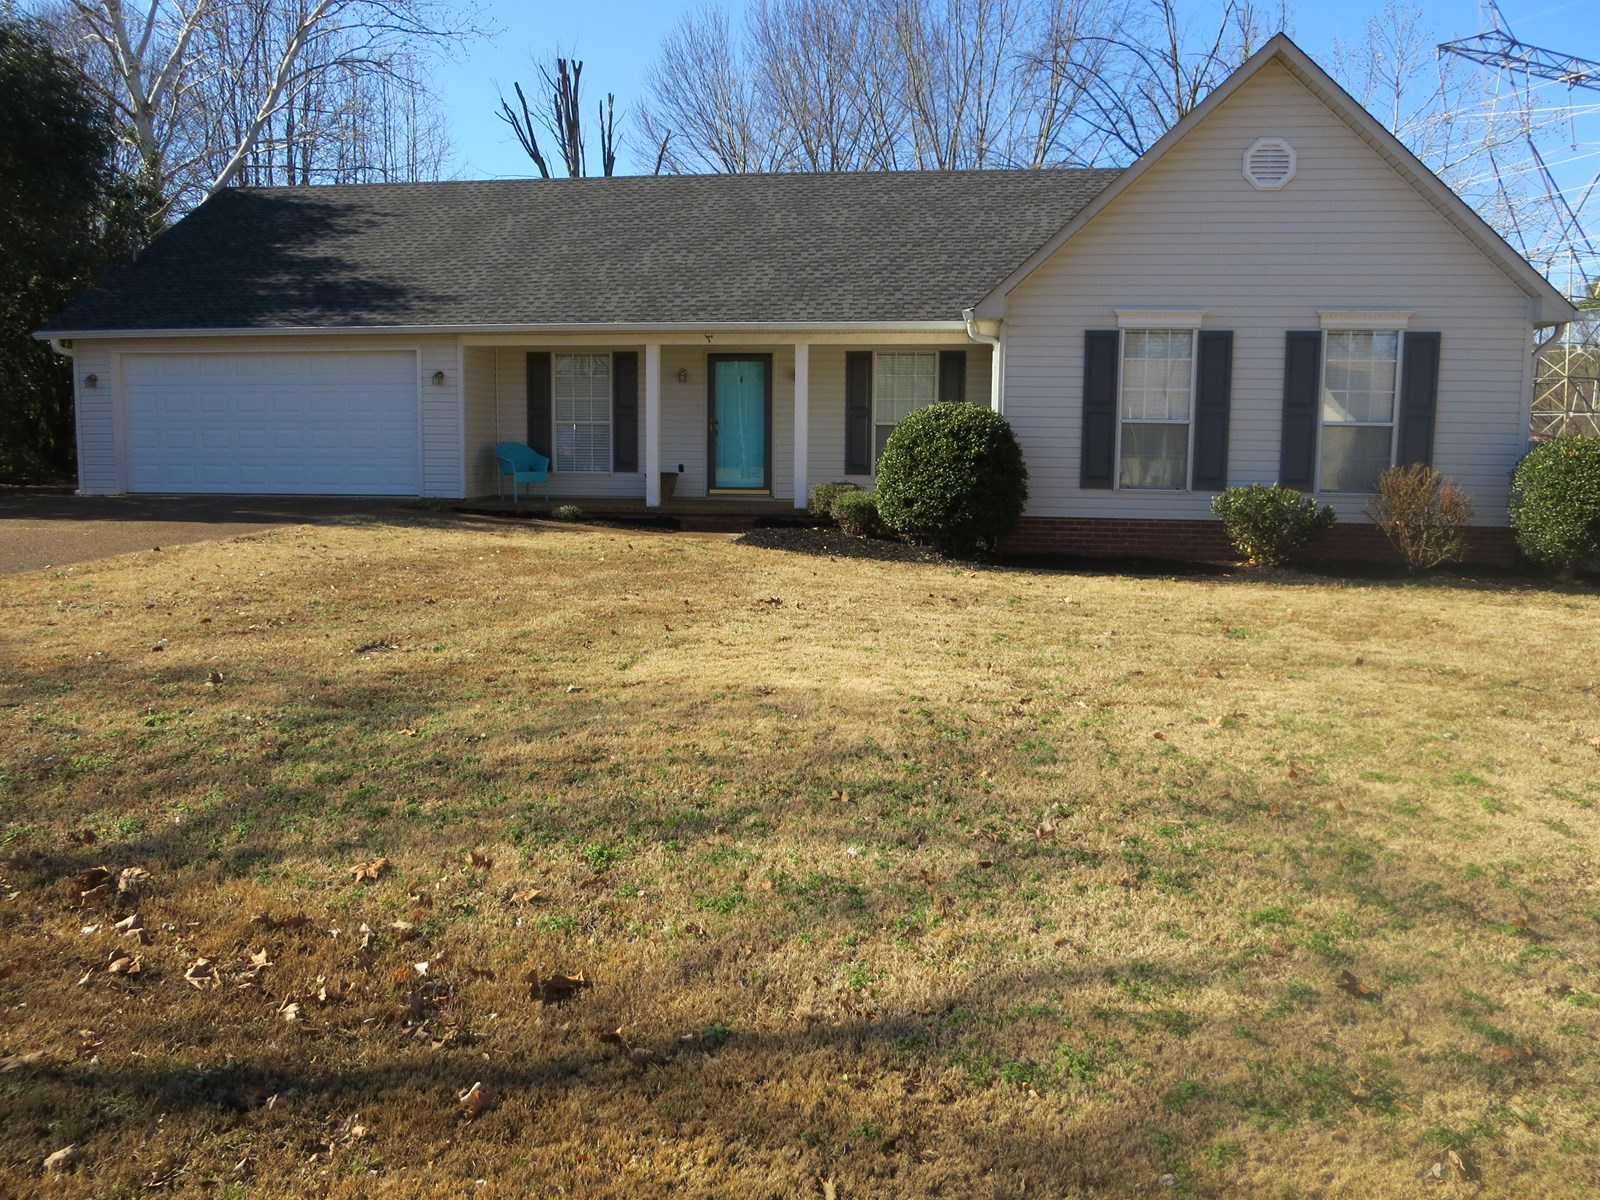 3 BR 2 BA Home For Sale in Jackson TN, near Kroger